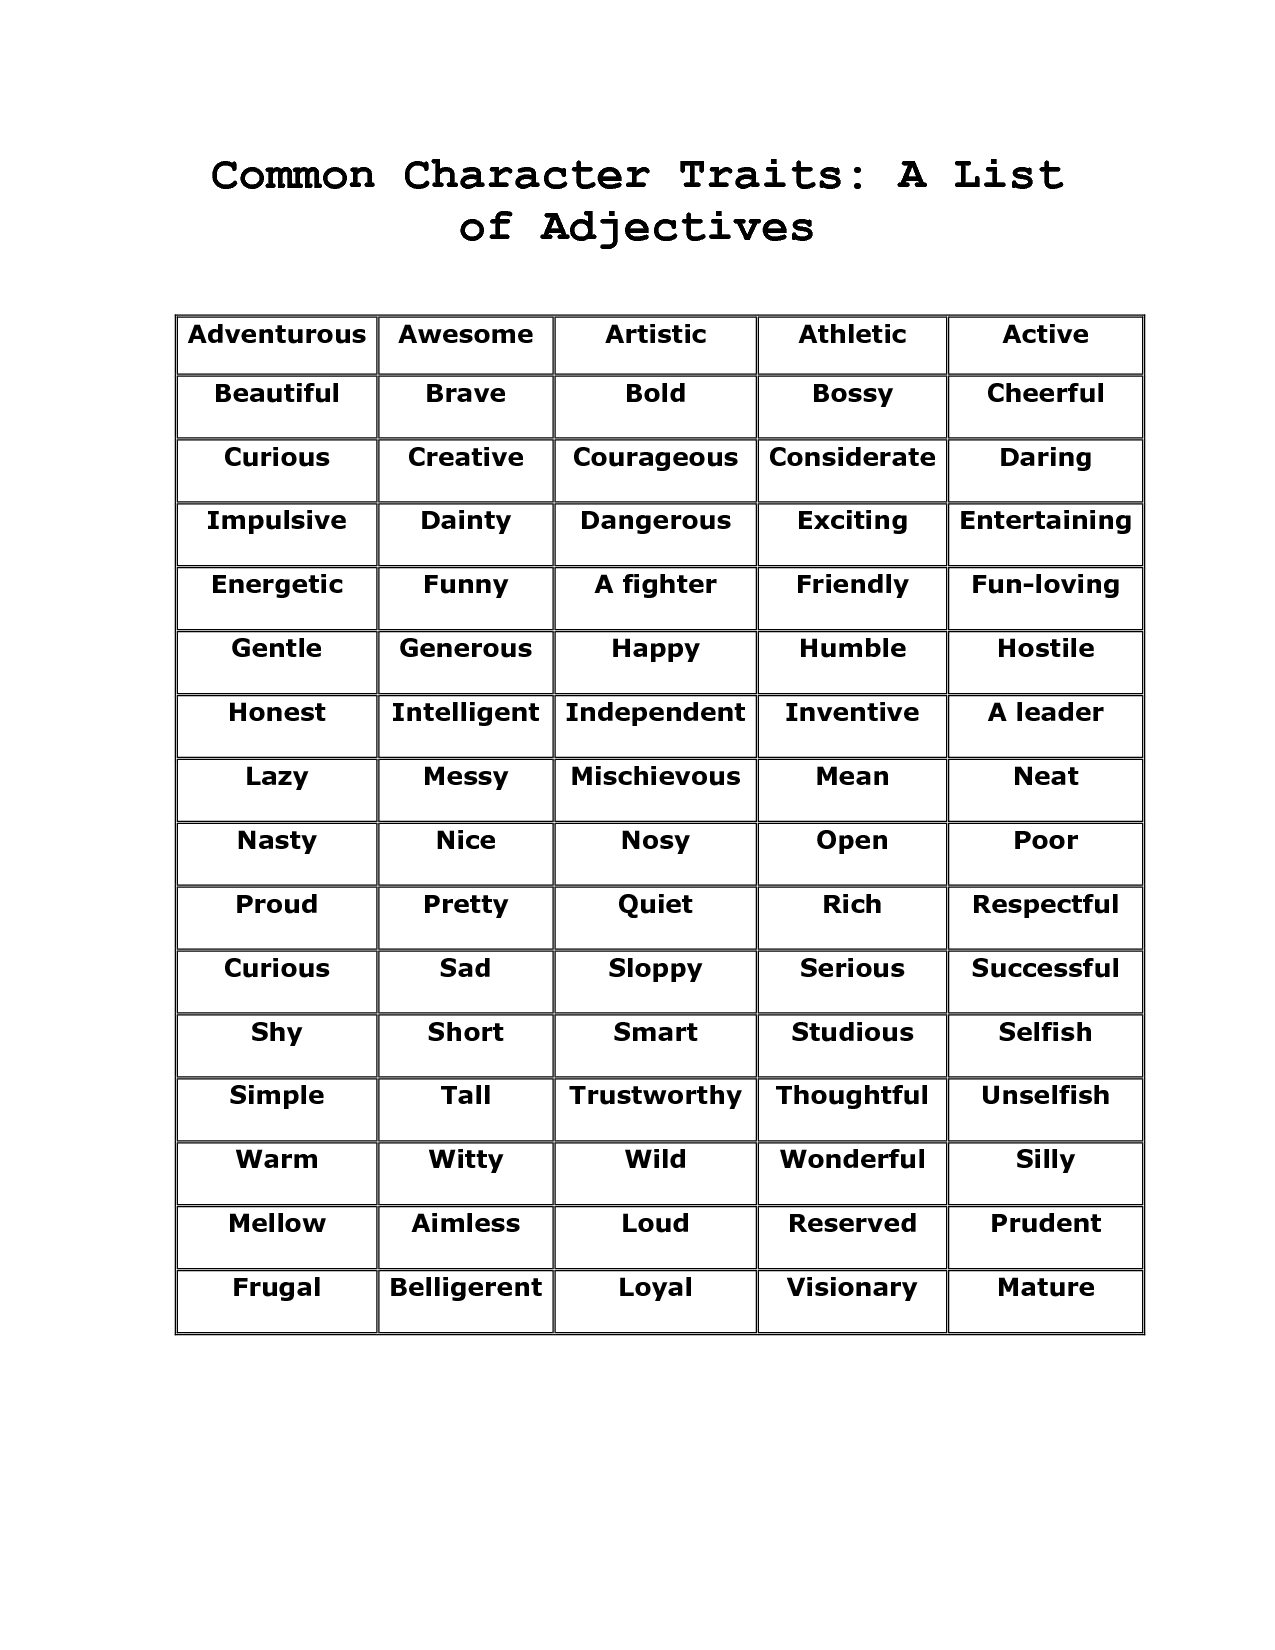 Personality Traits List For Characters